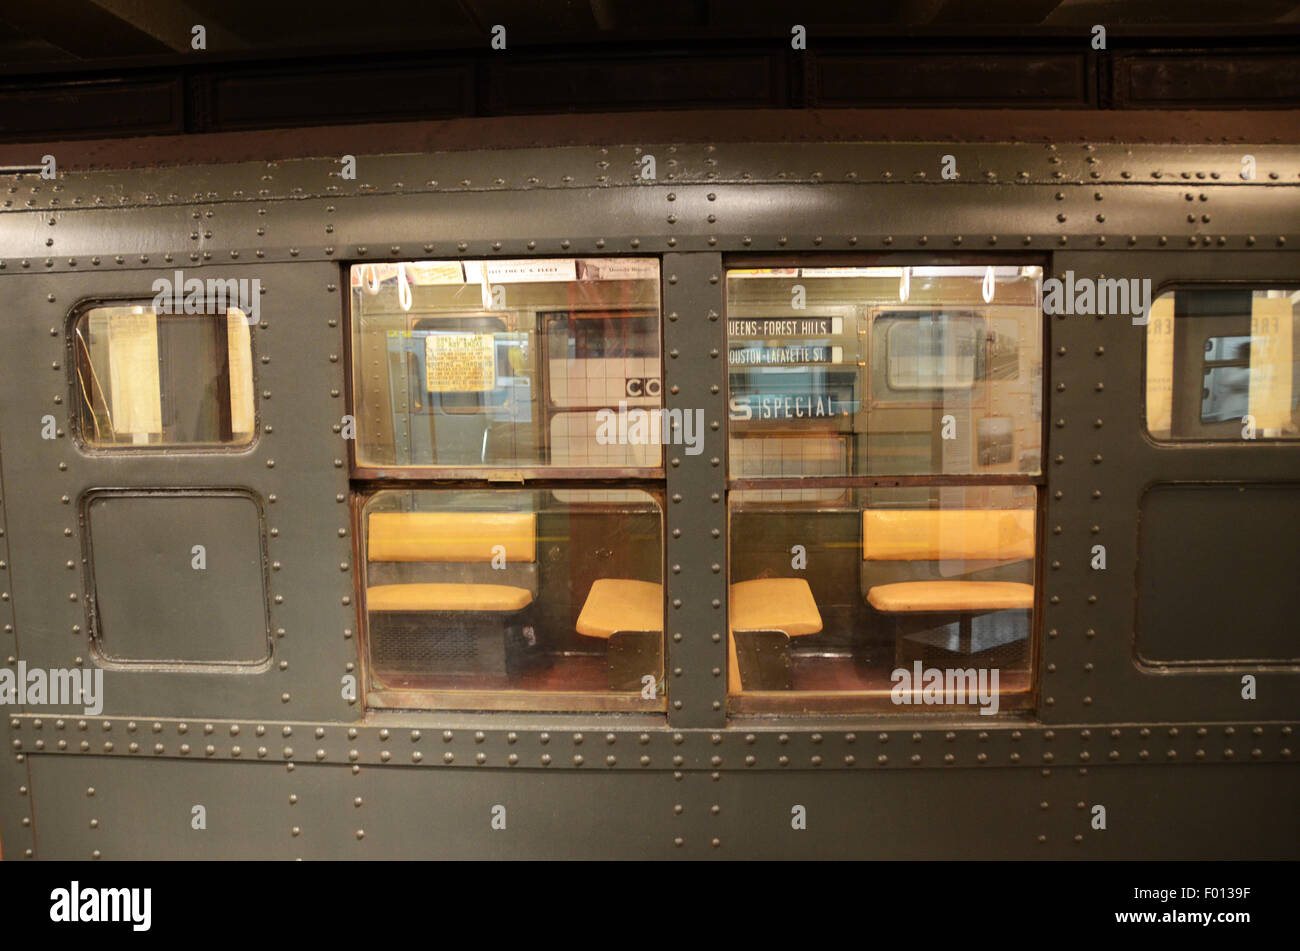 New York Transit Museum 1930 carriage subway vintage subway signs adverts rattan benches - Stock Image